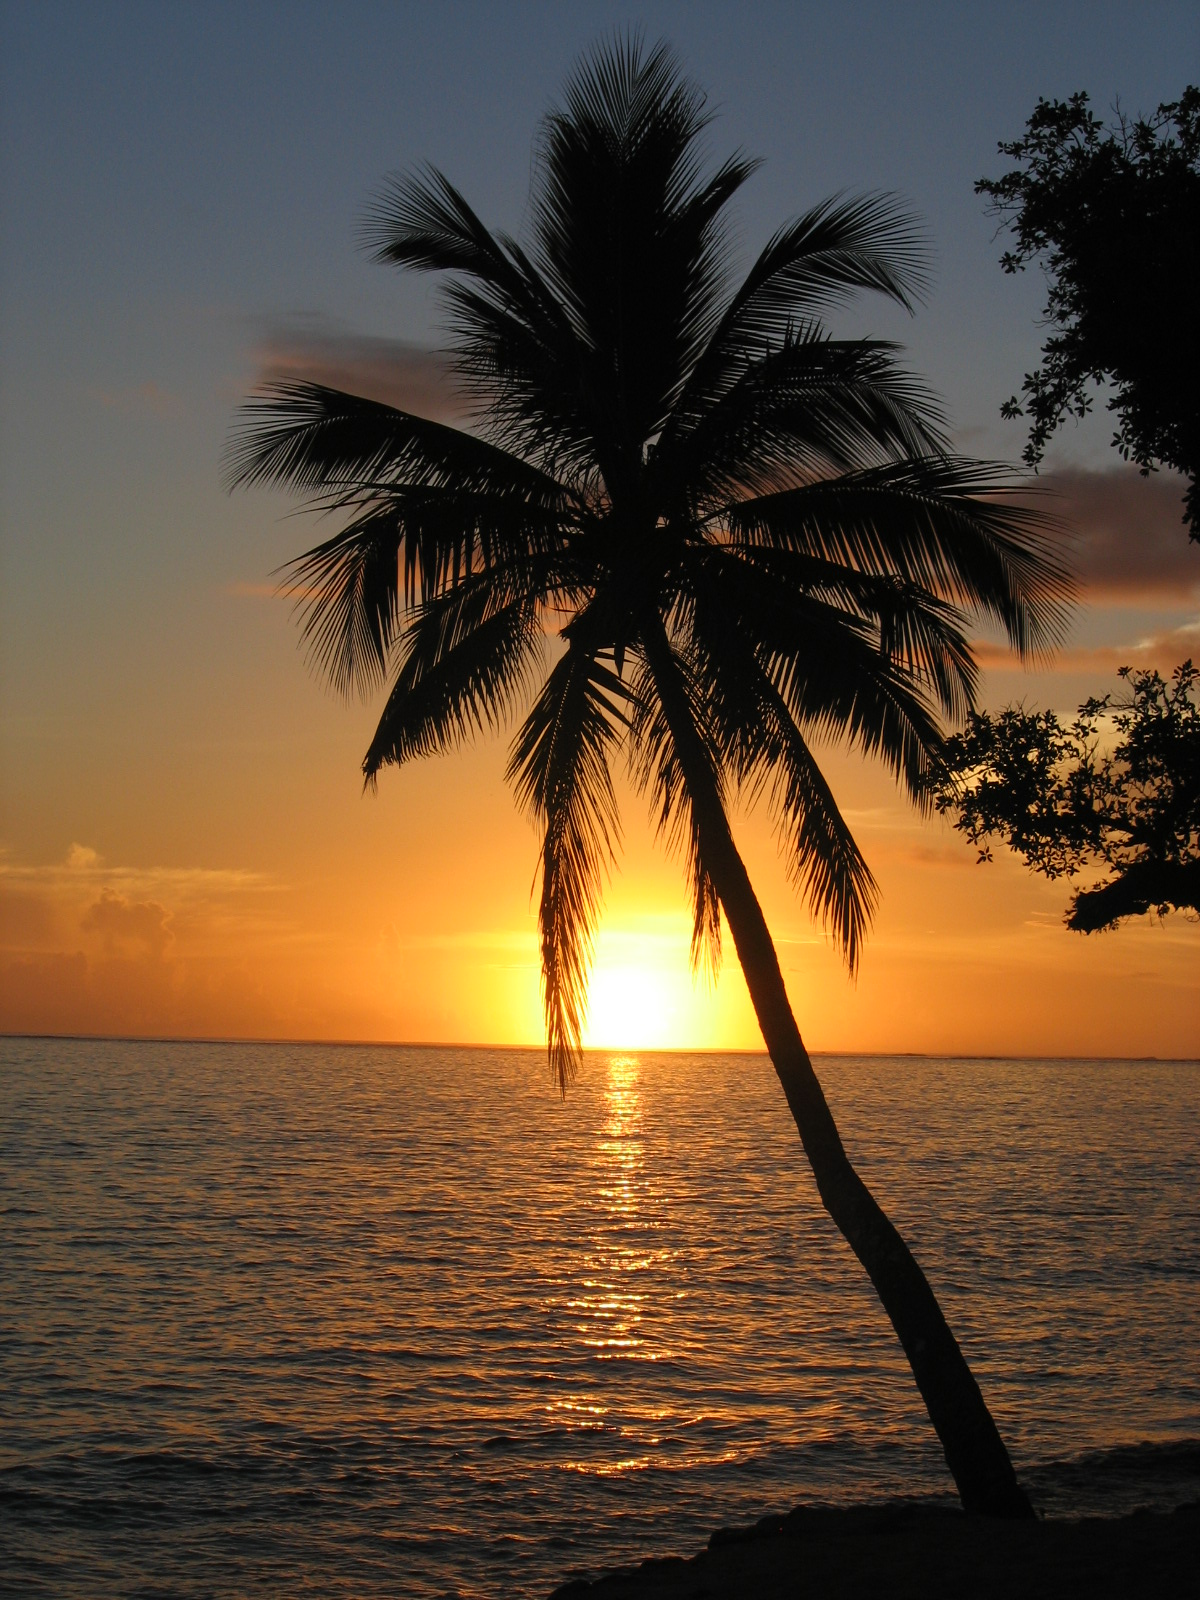 Description Sunset with coconut palm tree, Fiji.jpg